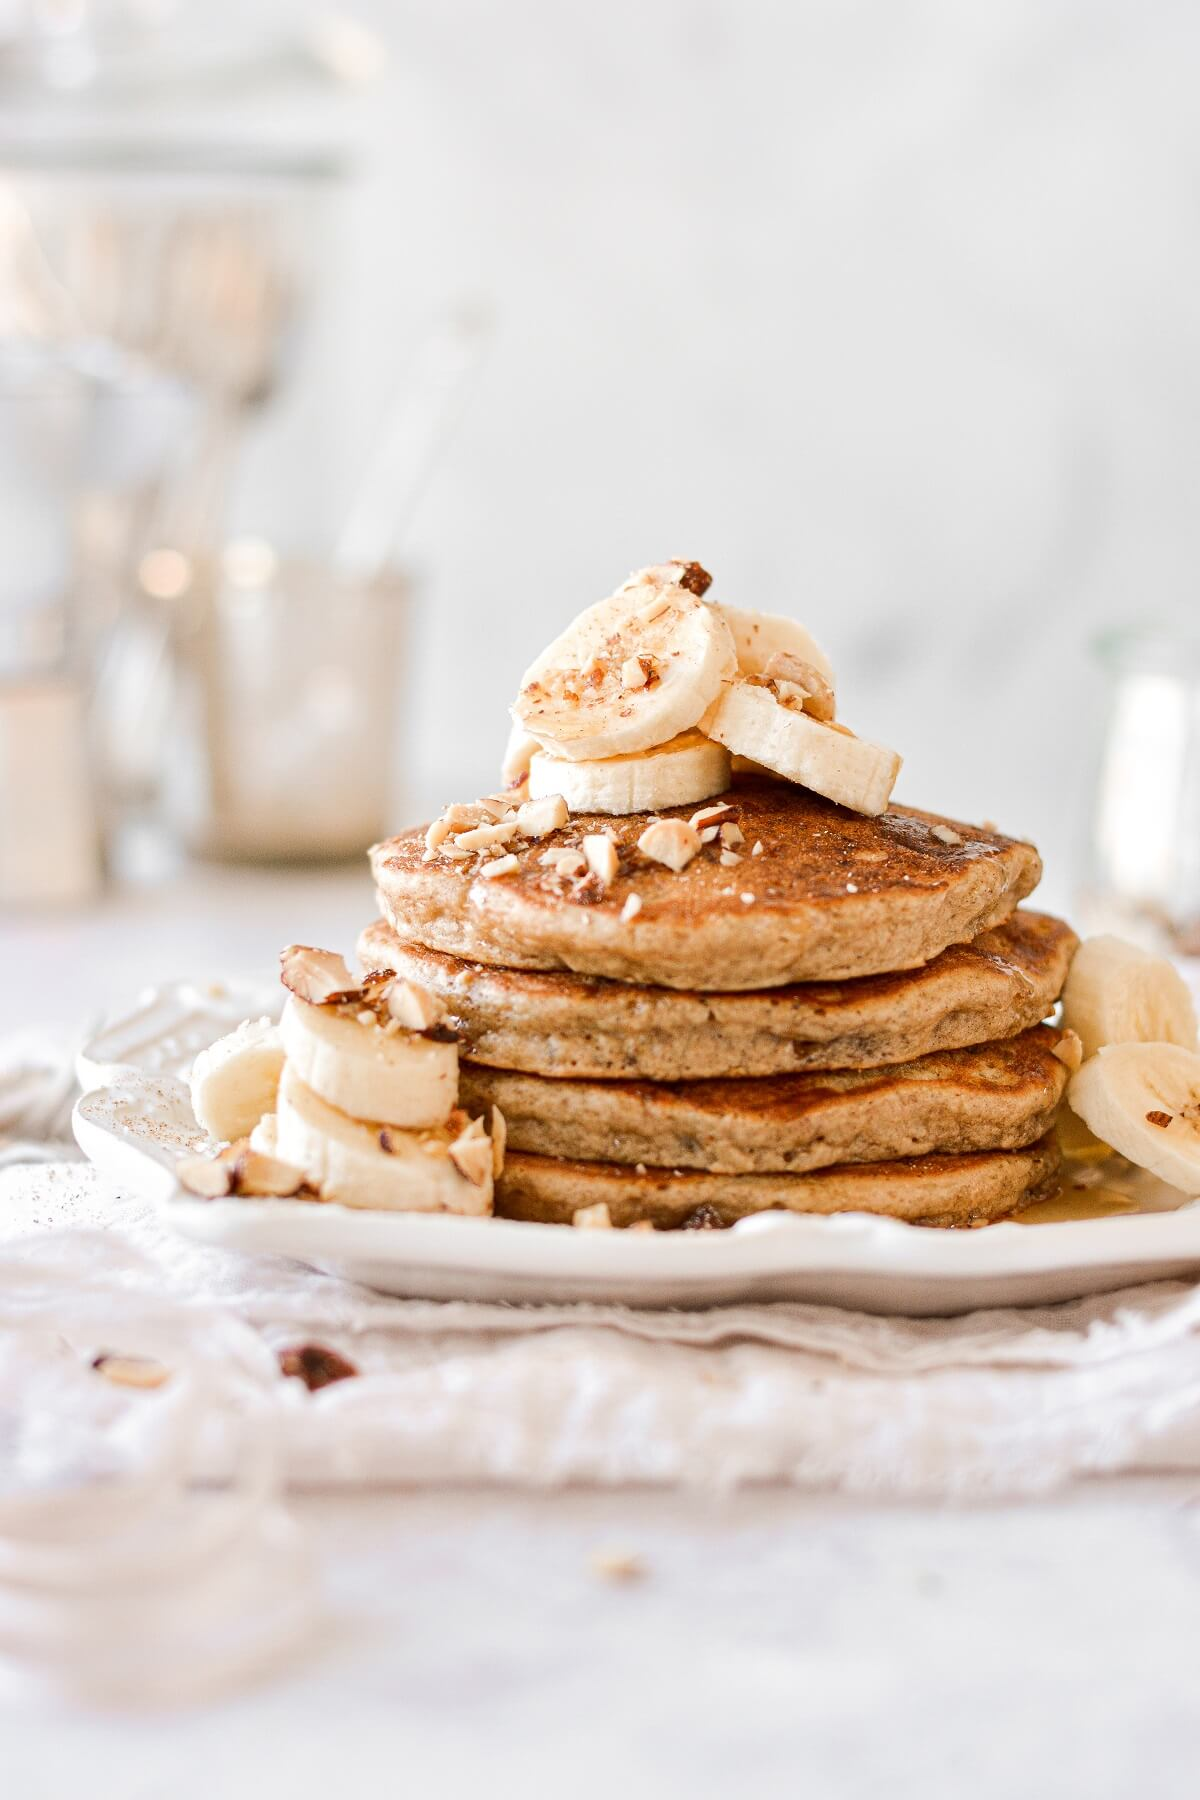 A stack of banana bread almond pancakes.